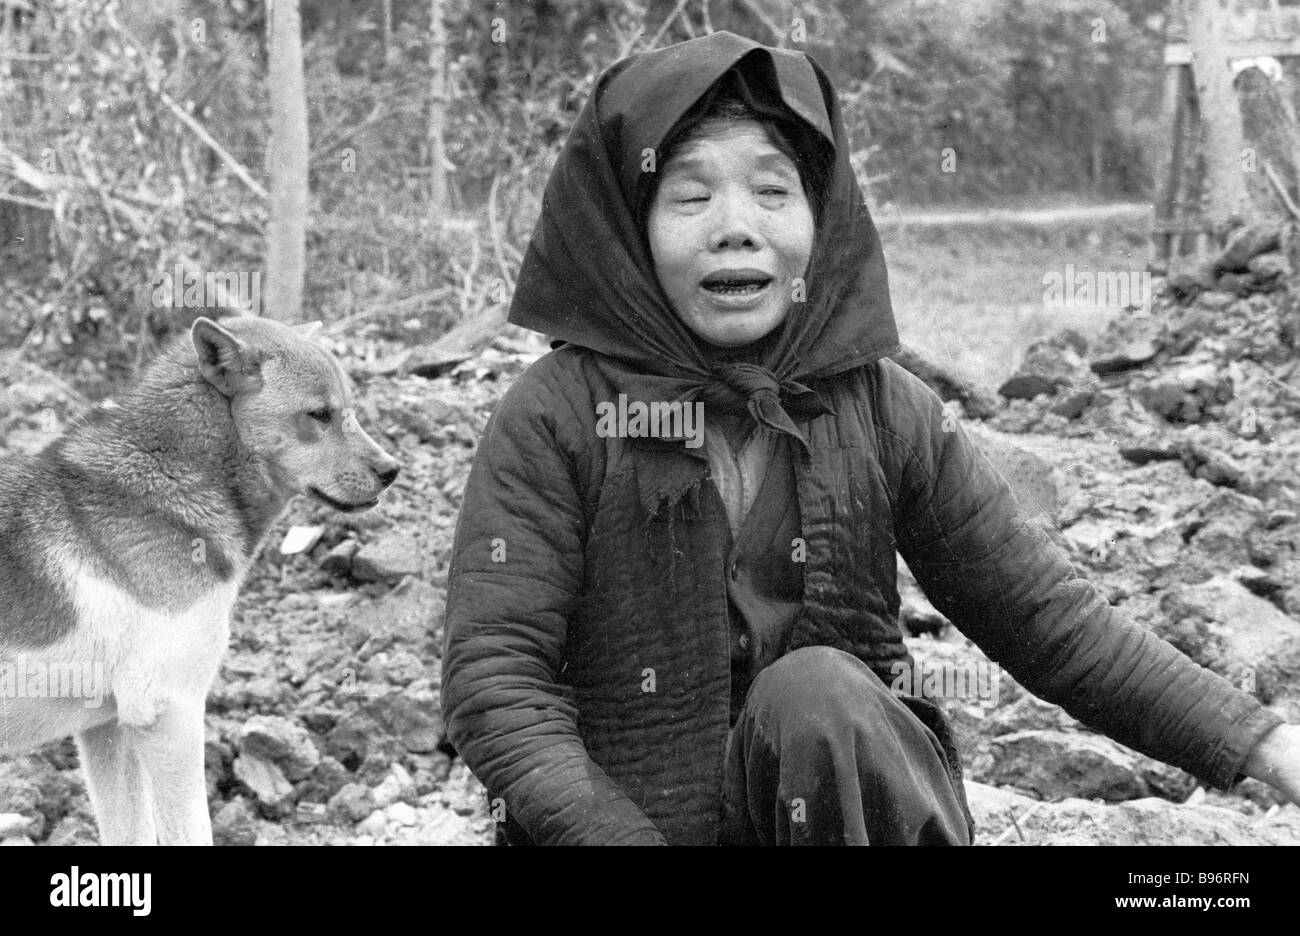 A Vietnamese woman who lost her entire family in the war - Stock Image